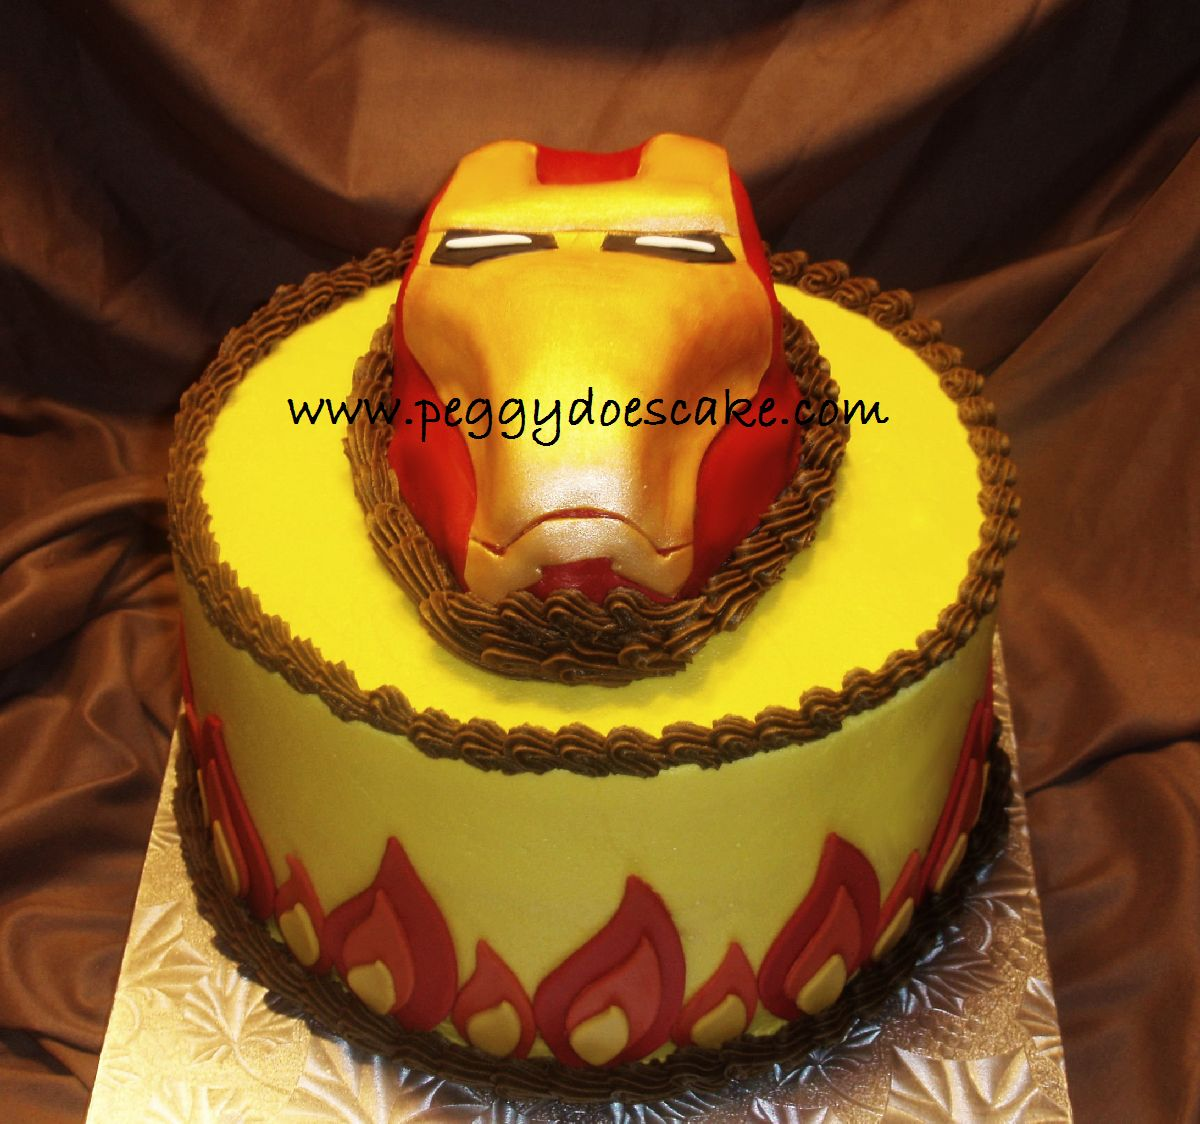 Peggy Does Cake I Am Iron Man Not Really Im Just Cake Click